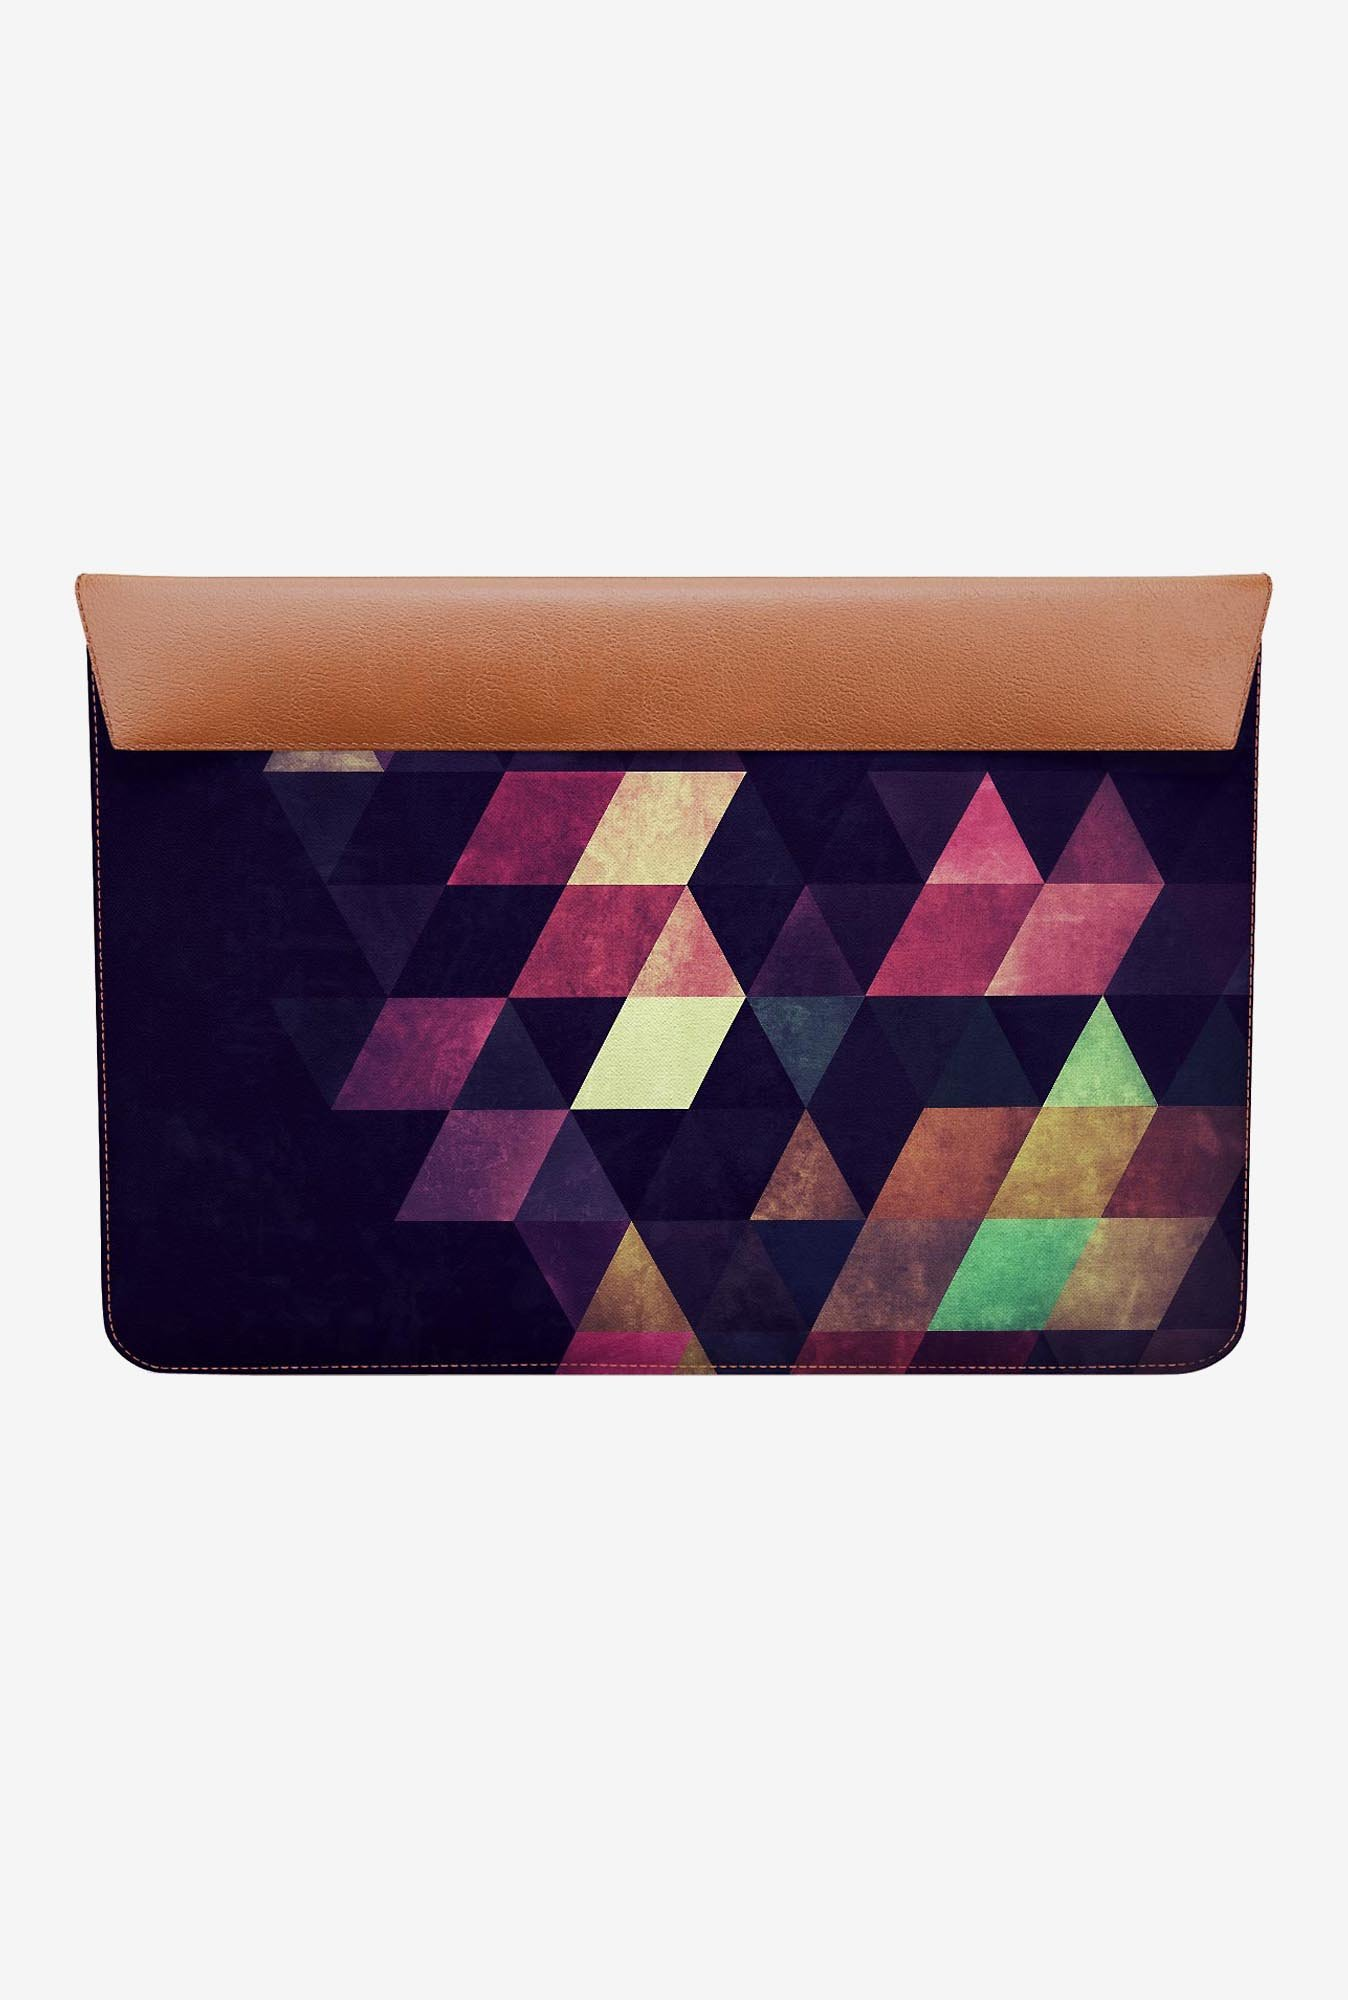 DailyObjects carny1a MacBook Air 11 Envelope Sleeve